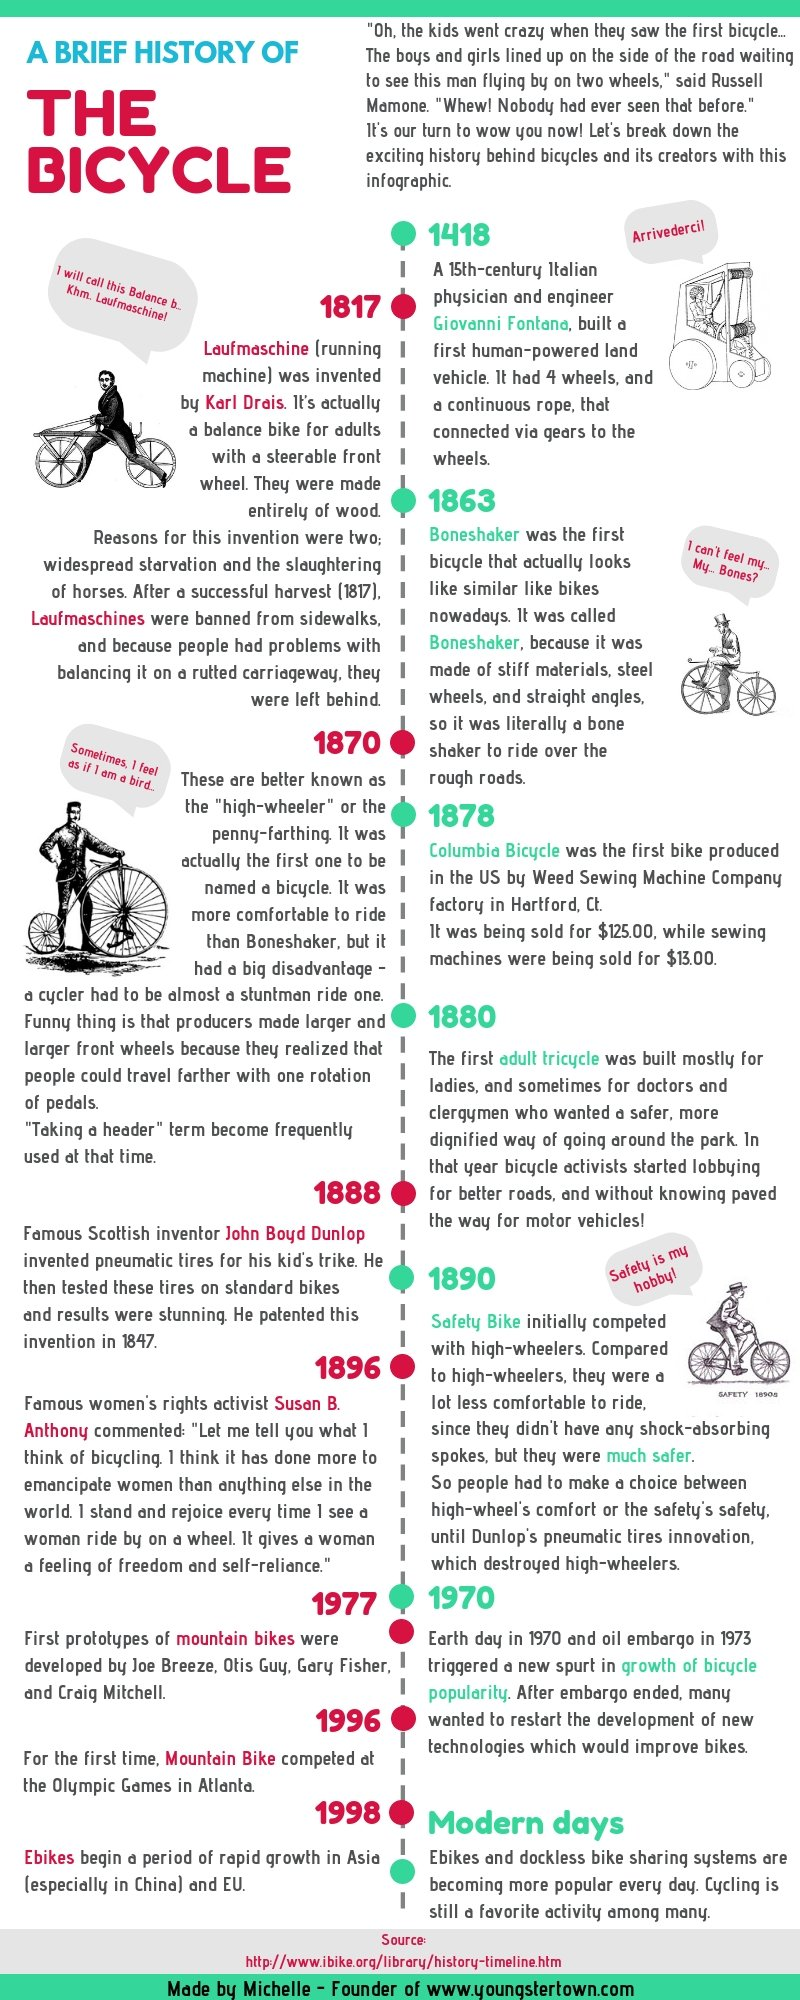 history of bicycles timeline